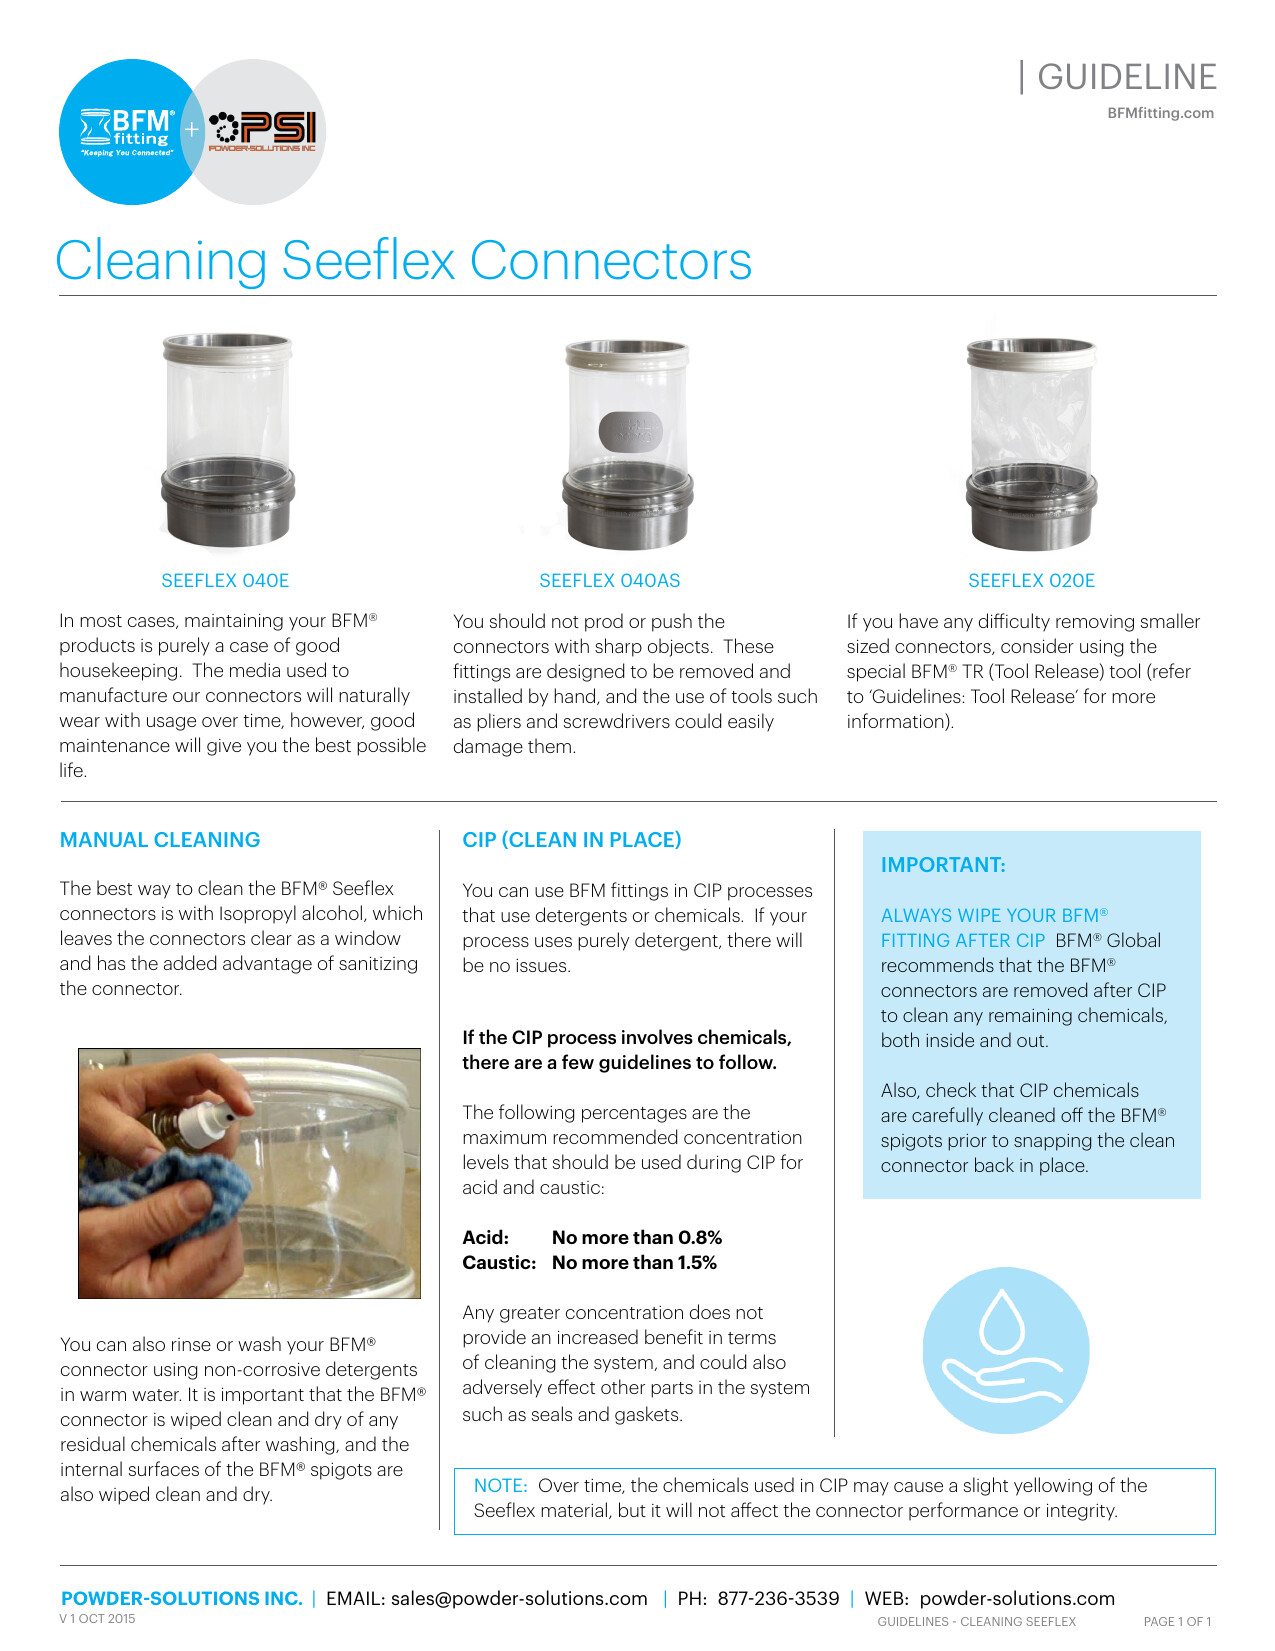 PSI BFM Guidelines - Cleaning Seeflex Connectors V1 Oct 2015